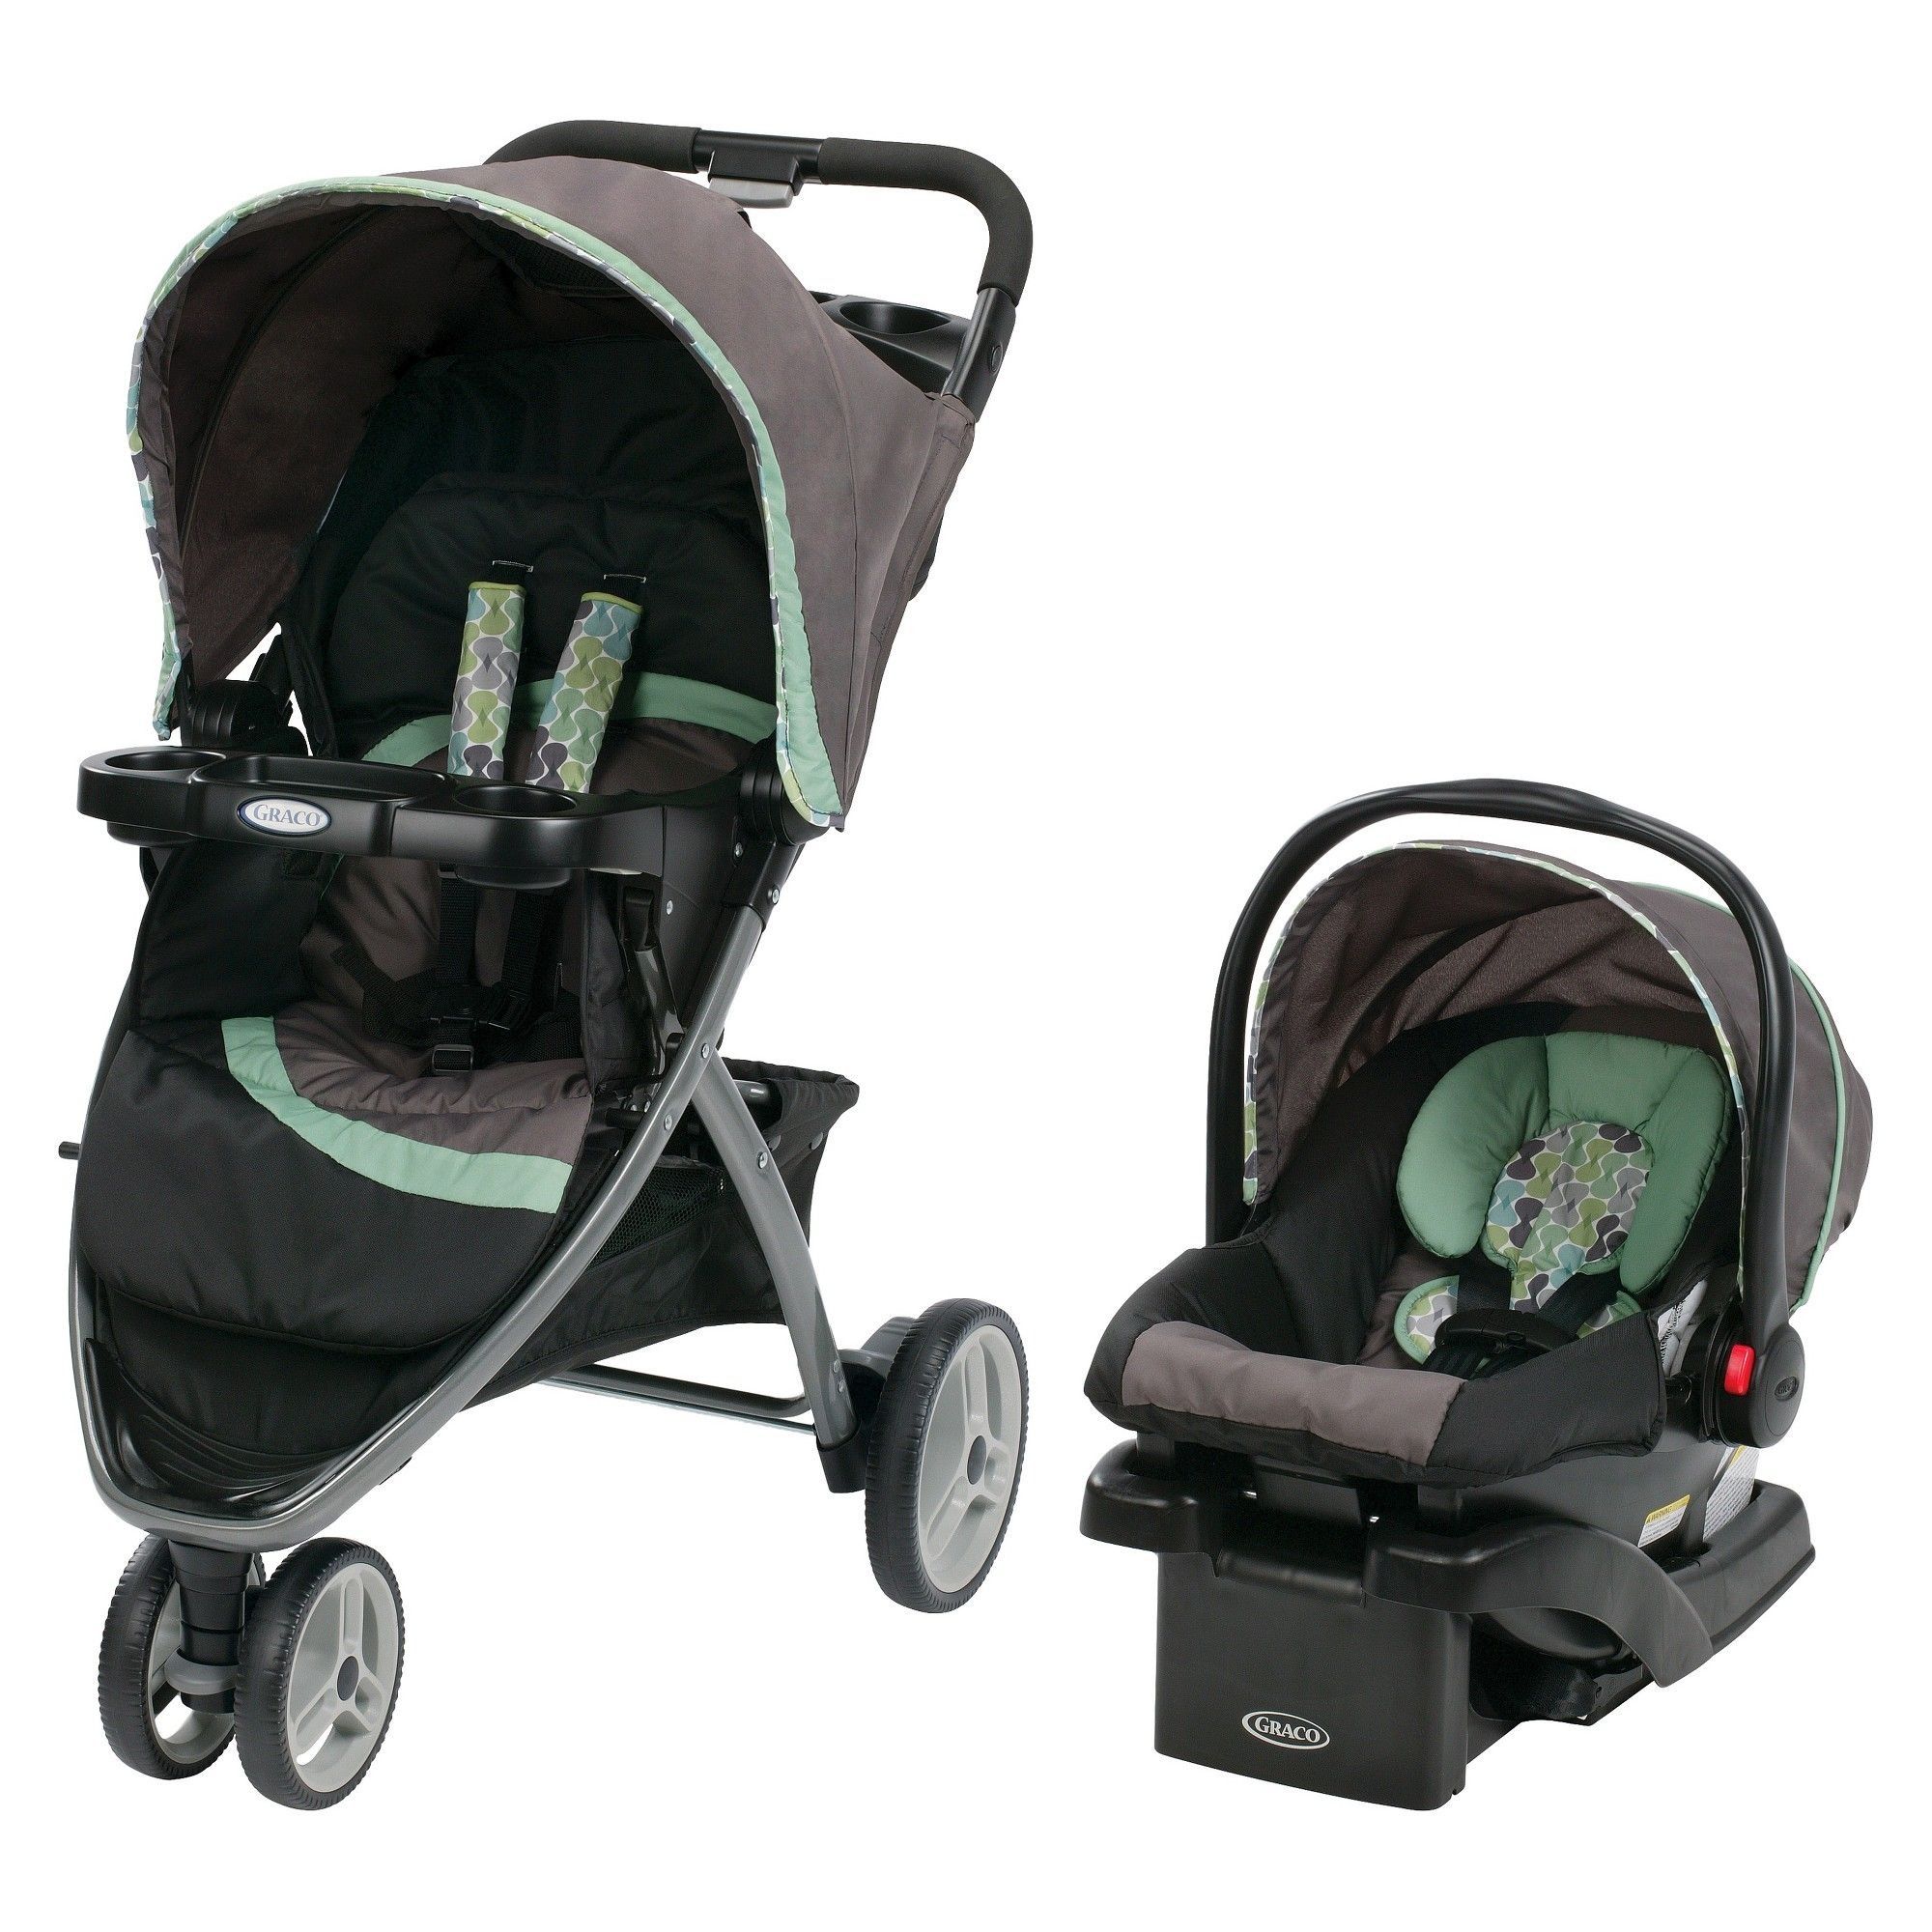 Graco Pace Click Connect Travel System, Ottawa Click